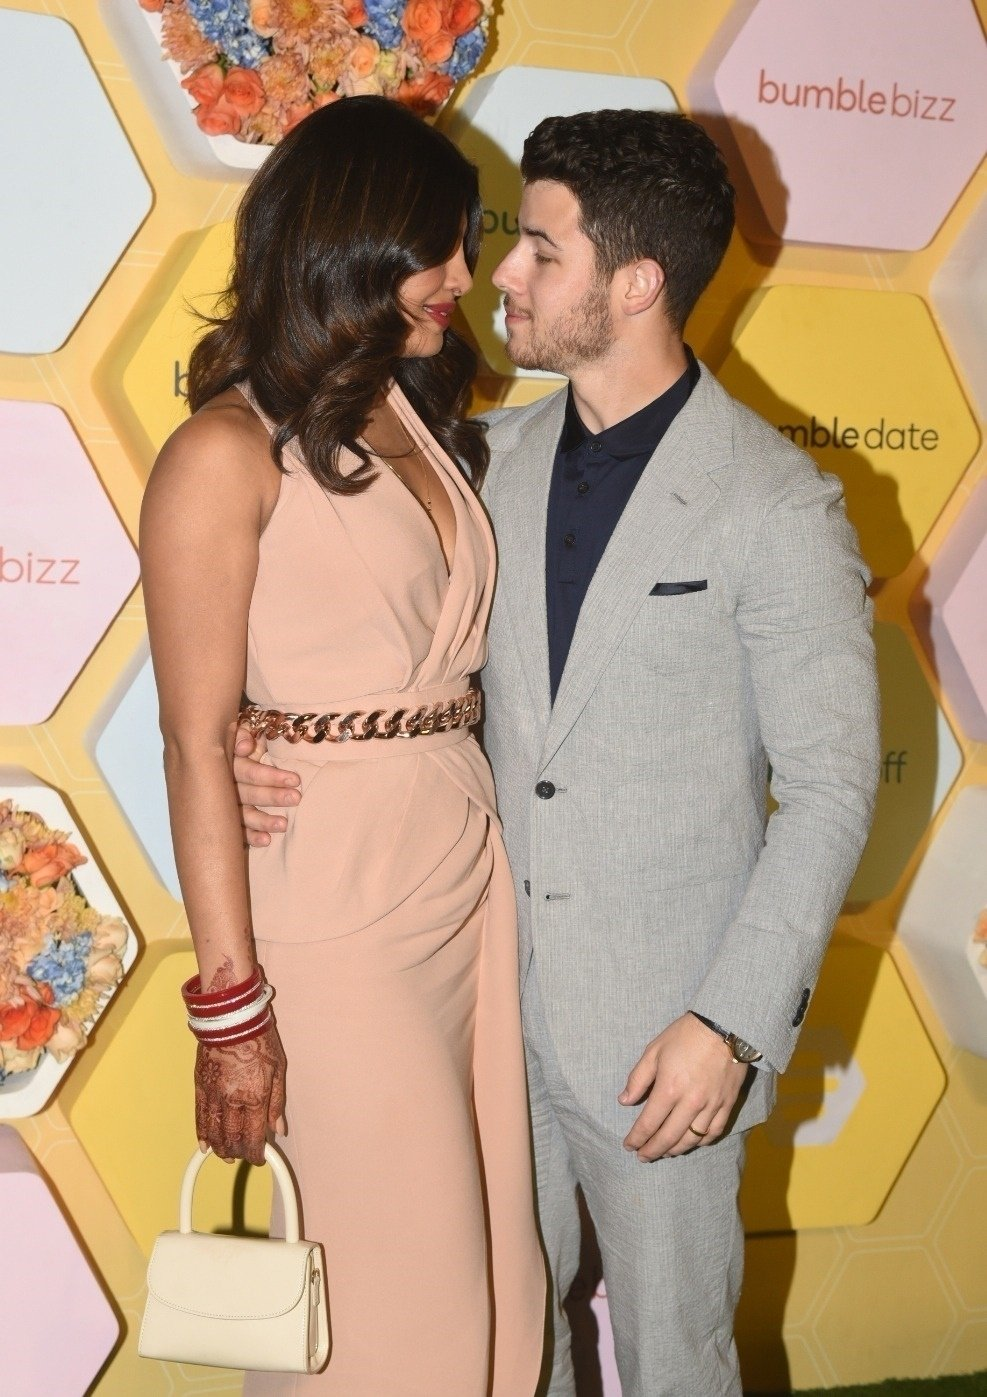 BGUK_1425525 - Delhi, INDIA  - Priyanka Chopra and Nick Jonas seen arriving at Bumble launch party in New Delhi.  Pictured: Priyanka Chopra and Nick Jonas  BACKGRID UK 5 DECEMBER 2018, Image: 400650331, License: Rights-managed, Restrictions: , Model Release: no, Credit line: Profimedia, Backgrid UK